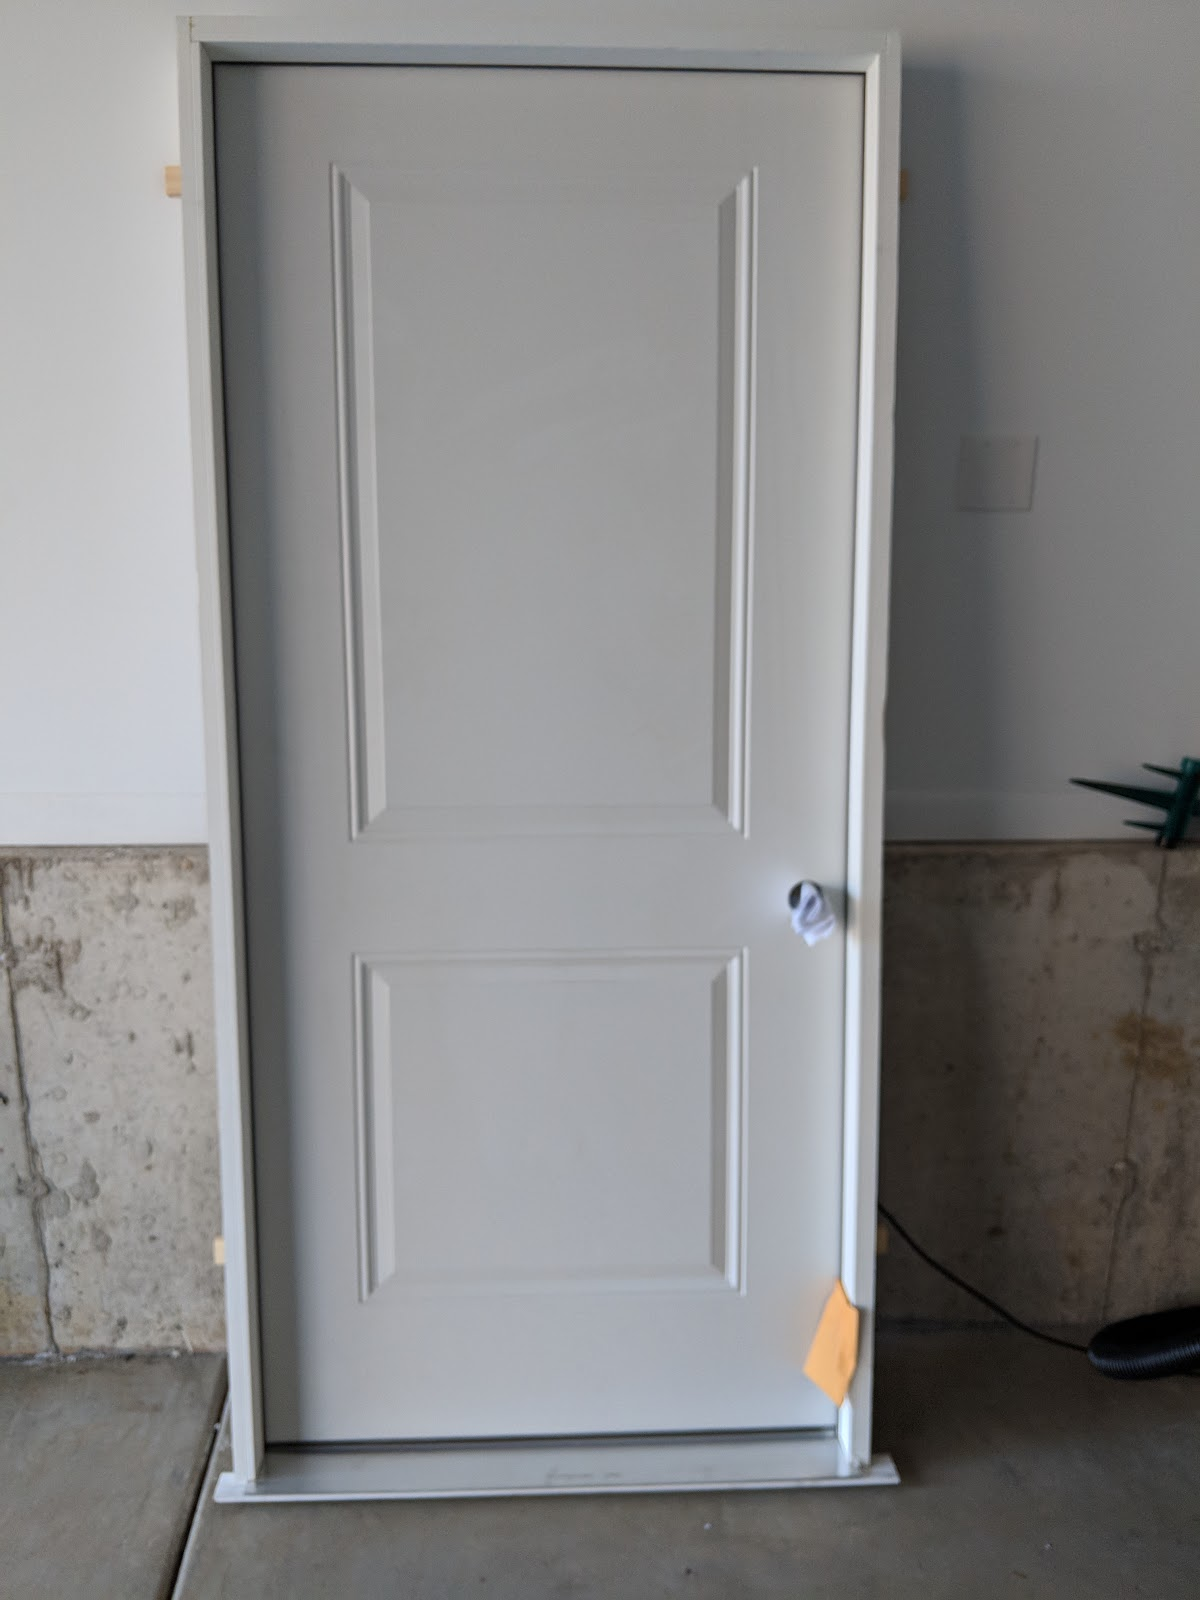 & Door Acquired for Basement Workshop Project